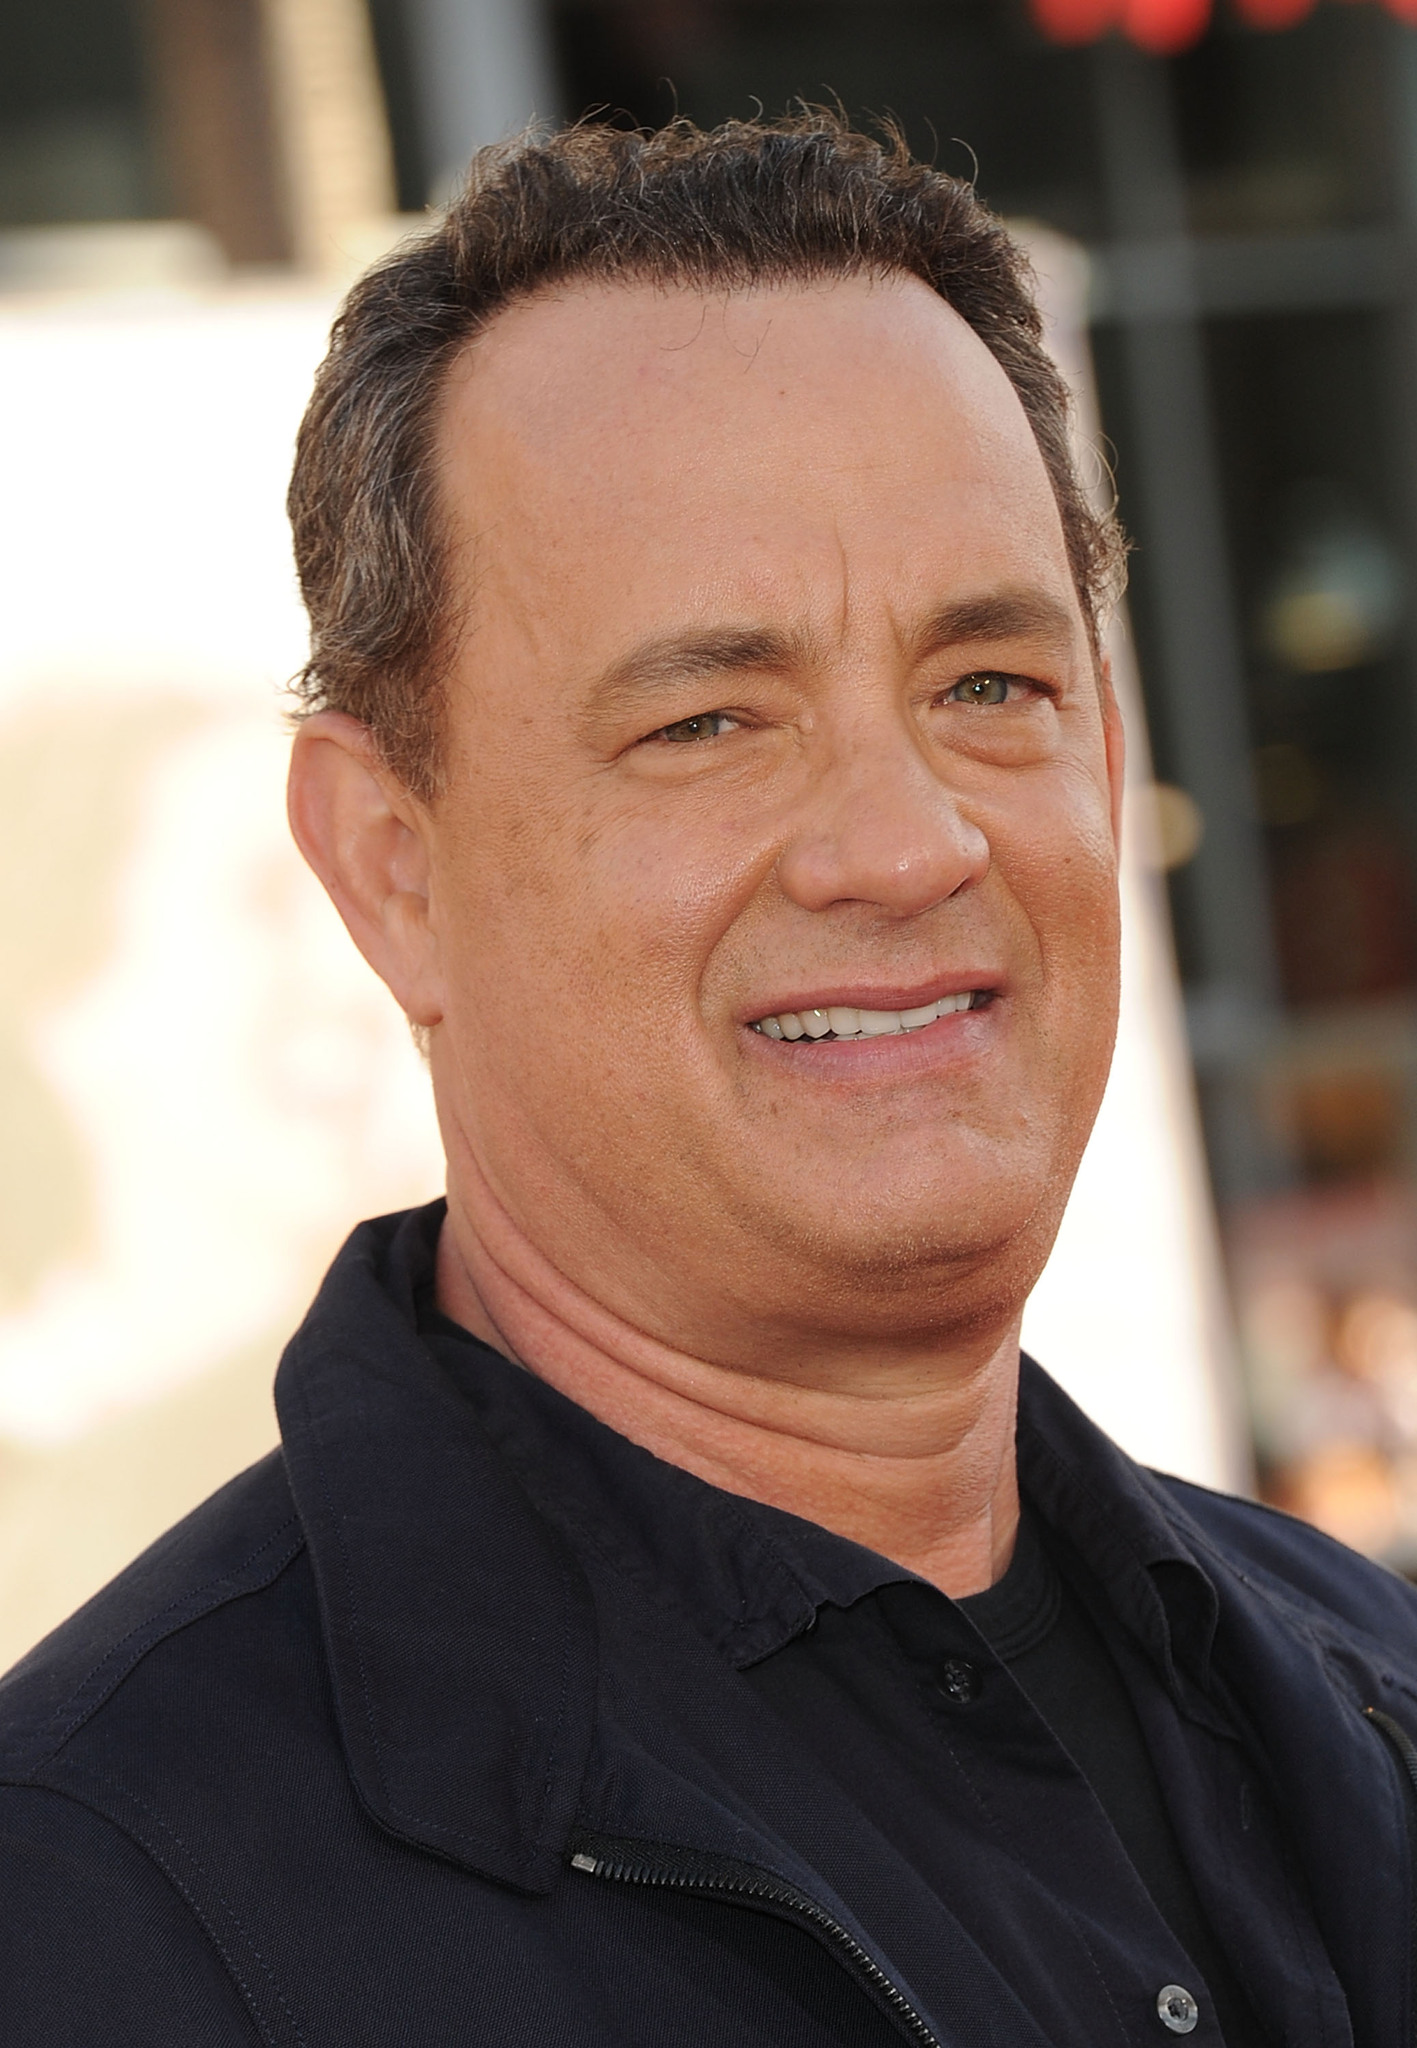 Tom hanks gay movie, matures vs young boys sex vids